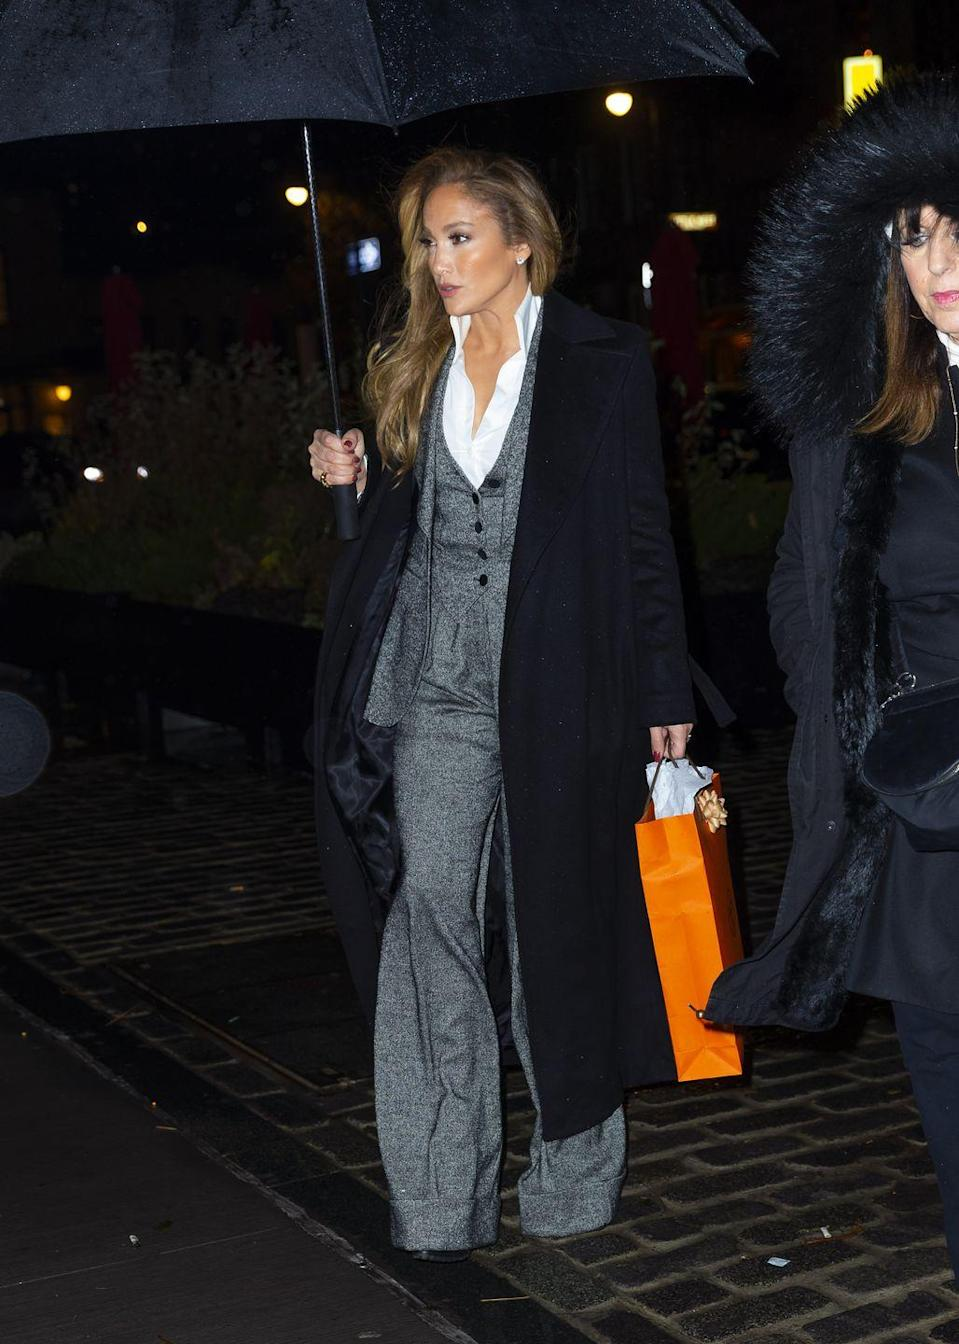 """<p>On Sunday 1 December, Lopez attended a special screening of Hustlers, which was presented by Will Ferrell, wearing a silver Dolce & Gabbana suit styled with a white shirt and black overcoat. The look was reminiscent of <a href=""""https://www.elle.com/uk/fashion/celebrity-style/news/a39336/blake-lively-seven-outfits-fashion-ryan-reynolds/"""" rel=""""nofollow noopener"""" target=""""_blank"""" data-ylk=""""slk:Blake Lively's press wardrobe"""" class=""""link rapid-noclick-resp"""">Blake Lively's press wardrobe</a> when promoting her film A Simple Favour last year.</p>"""